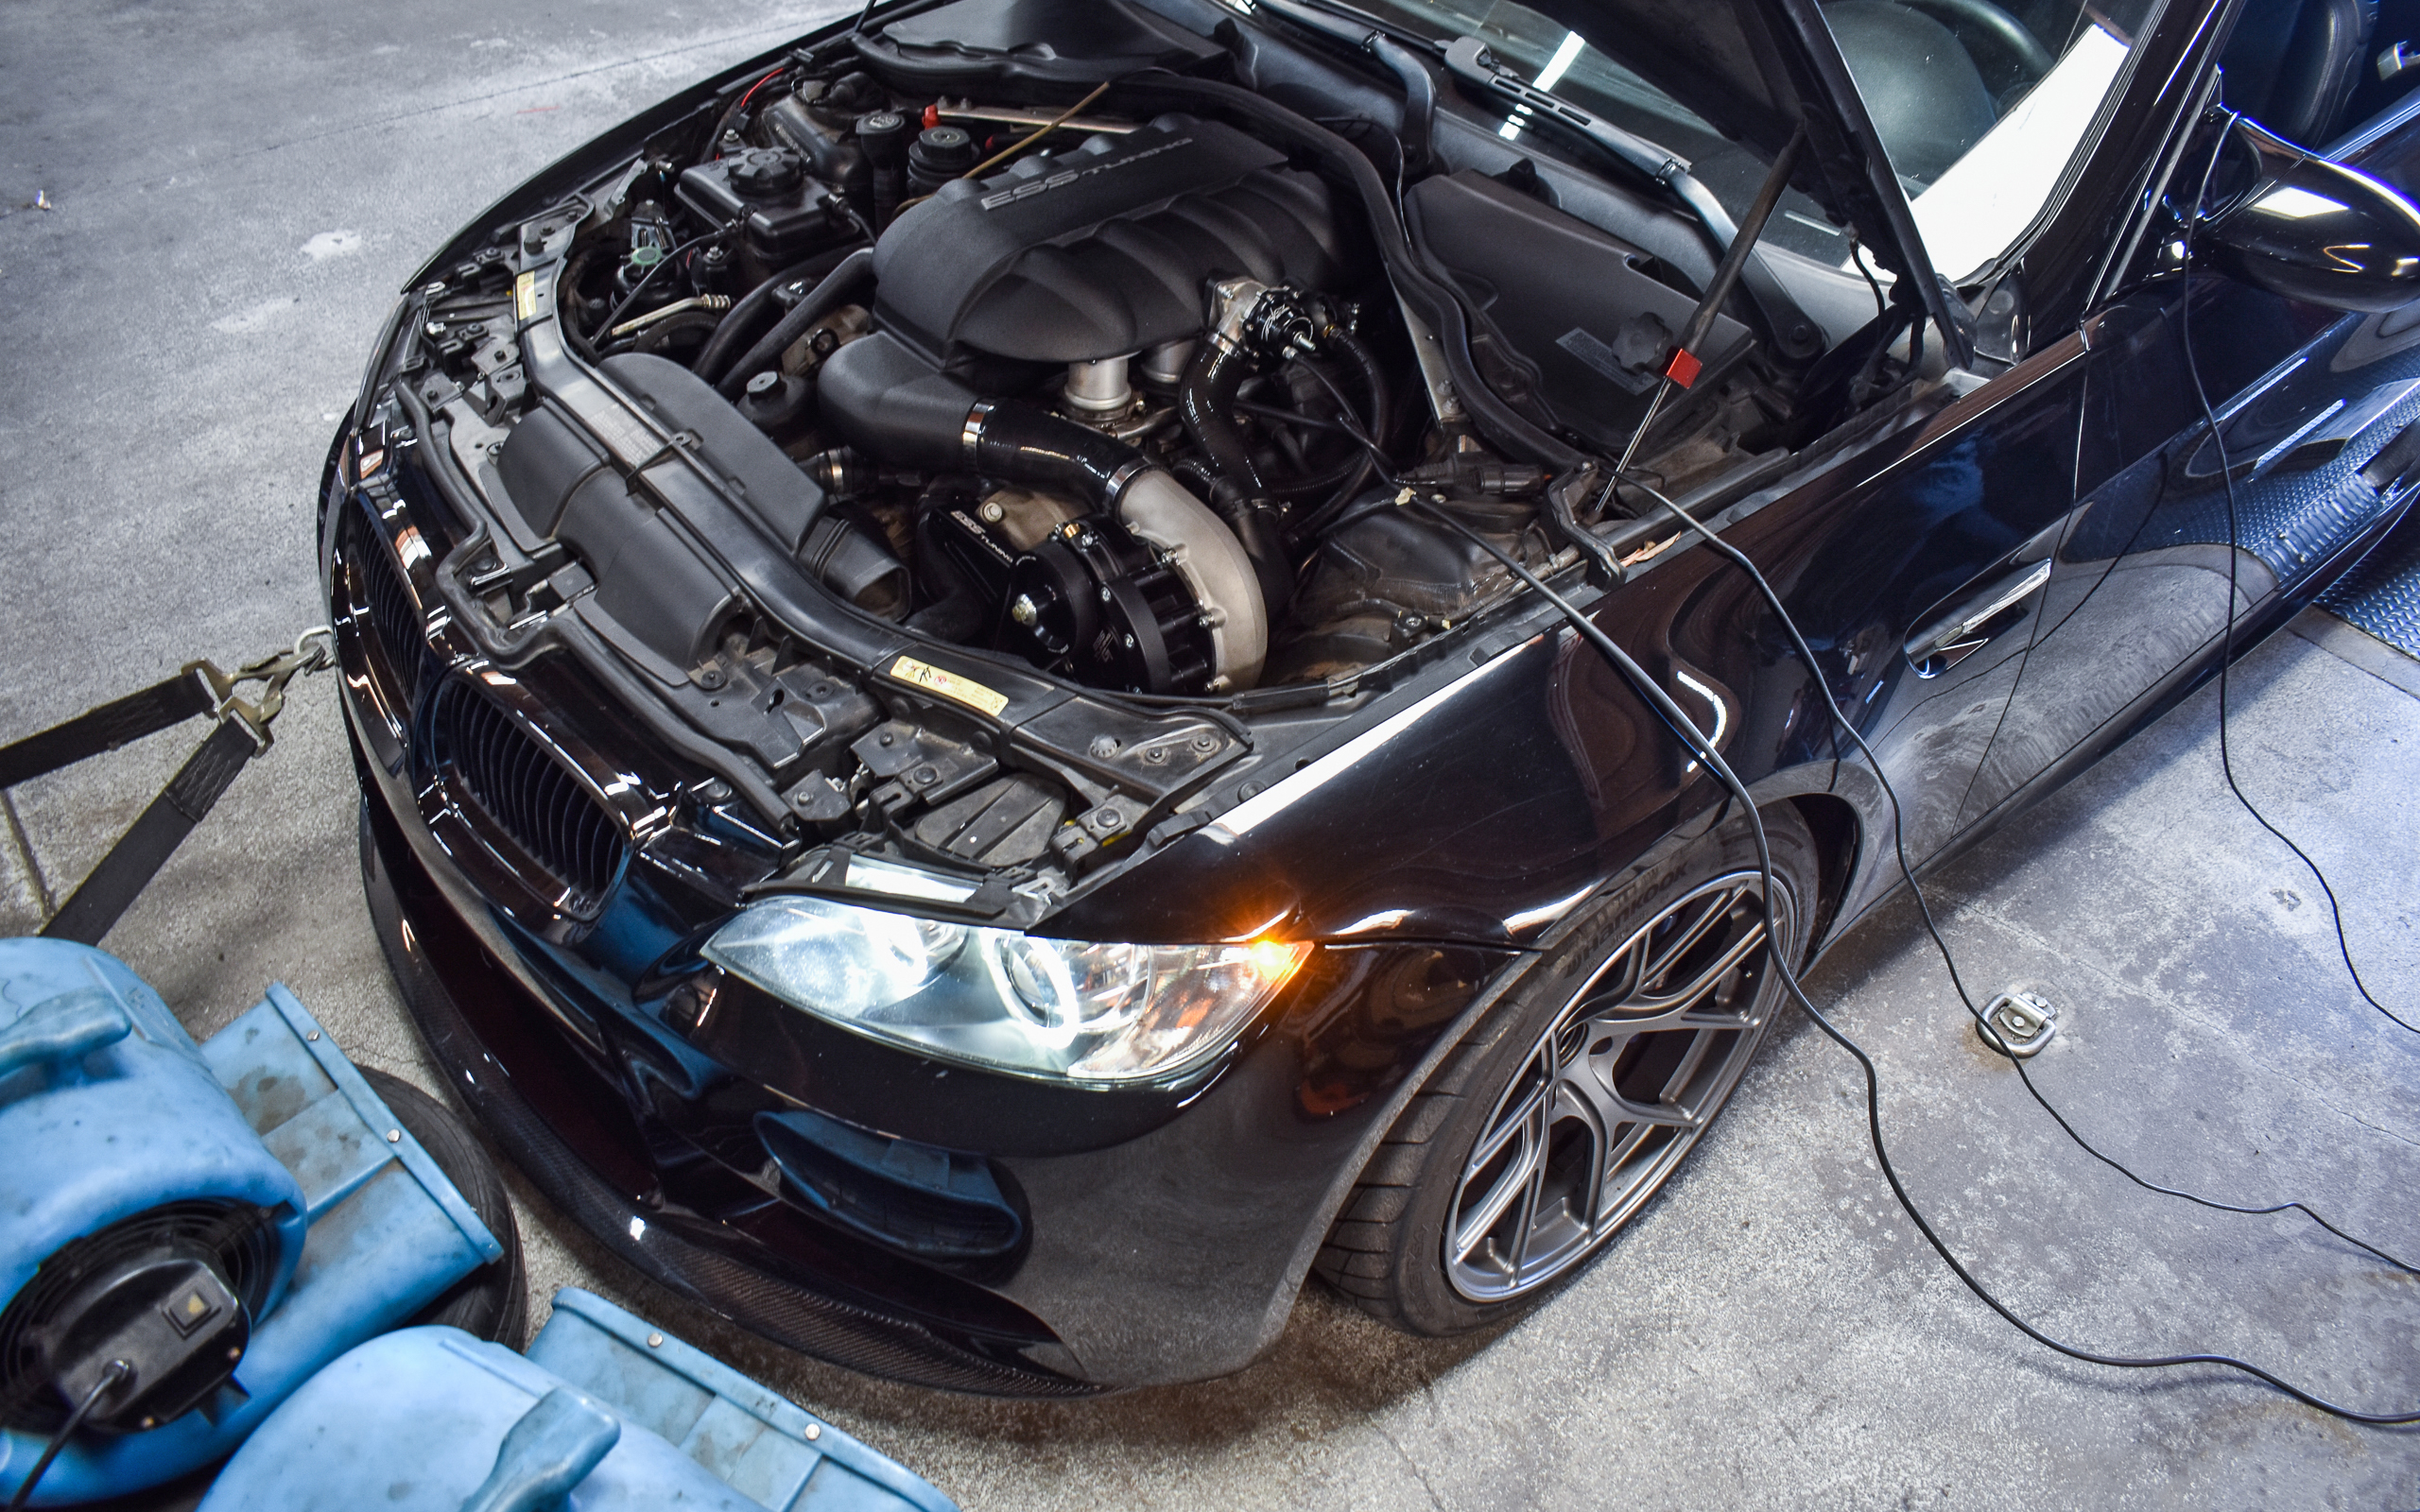 Jet Black E92 M3 - ESS Tuning G1 Supercharger System